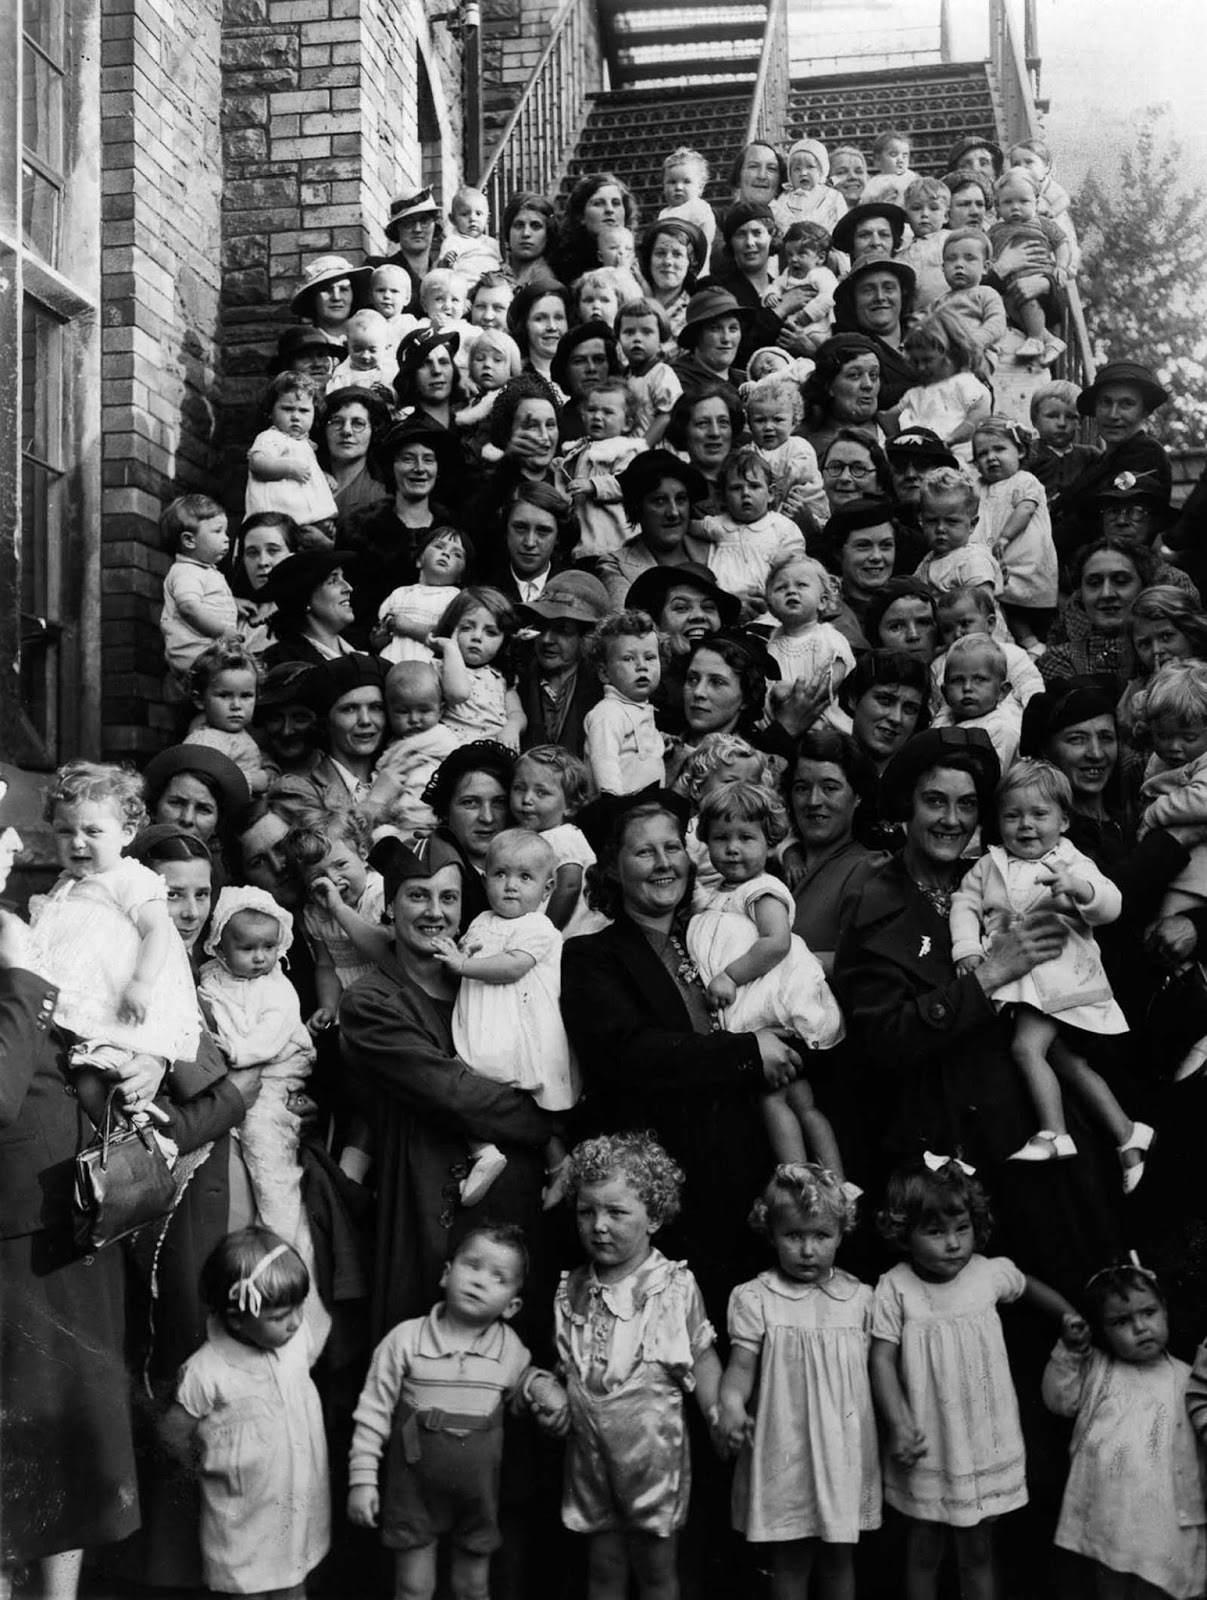 Participants in a baby show in England. 1950.